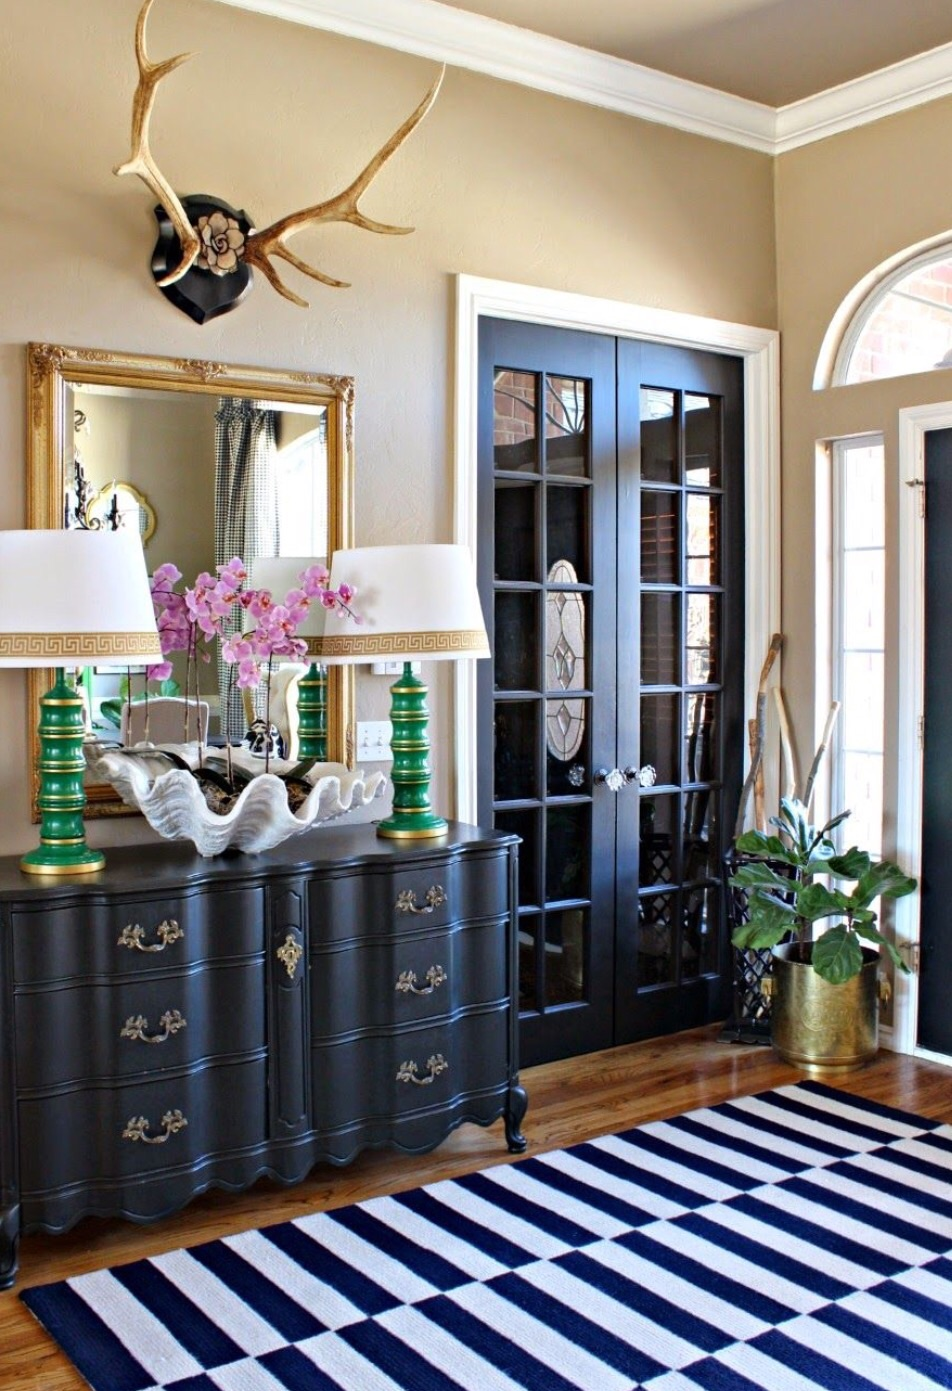 Merveilleux #3 Black Doors Add Balance To Other Black Décor In The Room